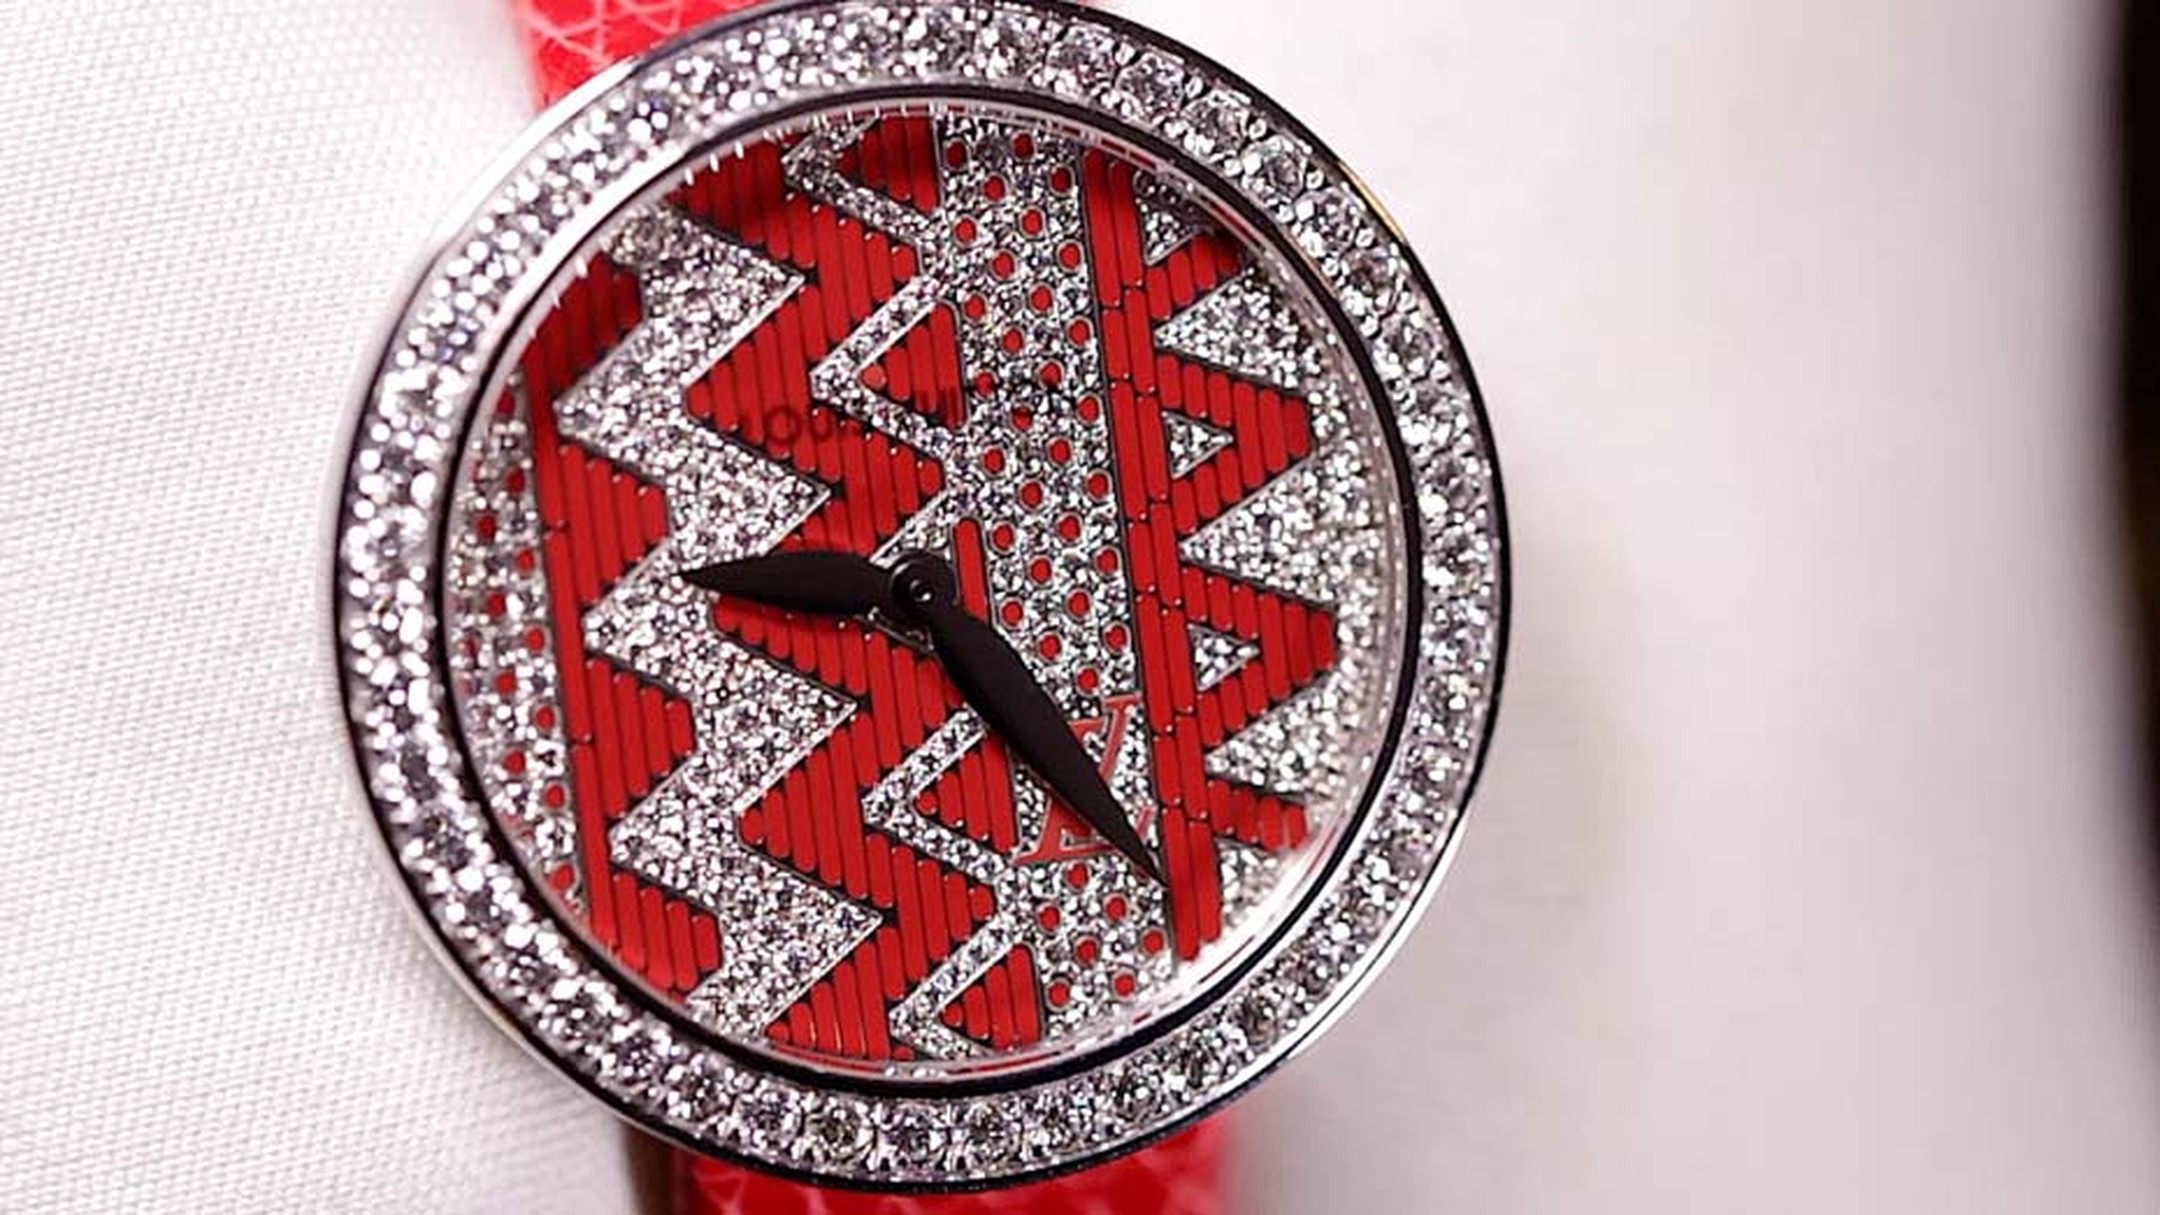 Louis Vuitton's new Chevron ladies' watch in red lacquer and diamonds was created under the guidance of creative director Nicolas Ghesquiere, whose Summer 2015 ready-to-wear collection incorporated the famous Monogram V.